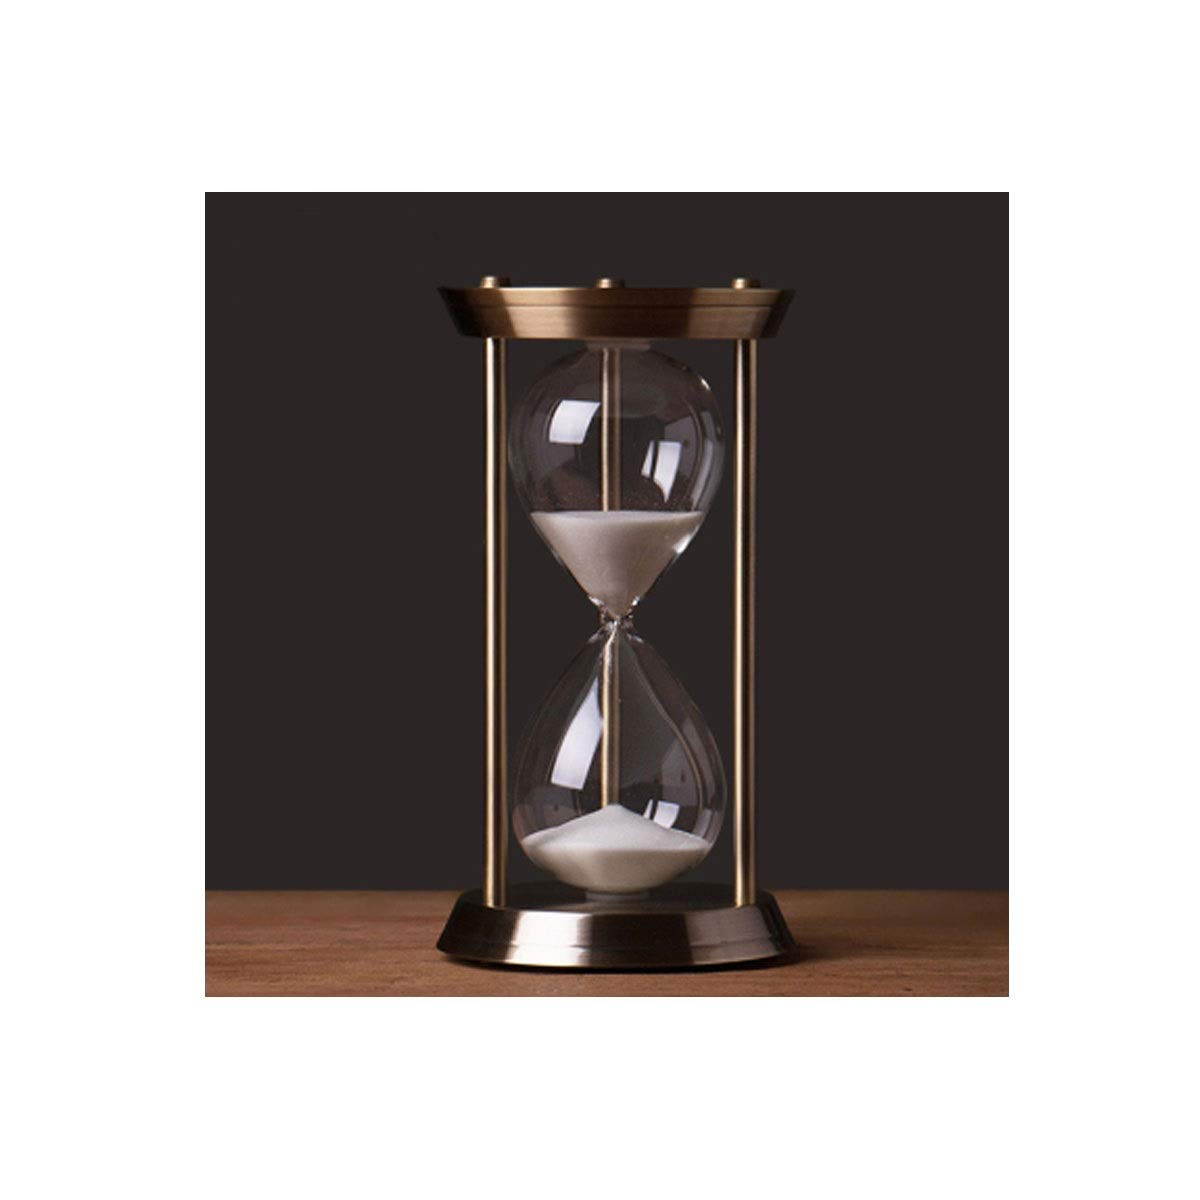 Jinnuotong Hourglass, Simple Atmosphere Decorated Hourglass Style, Made of Iron and Glass Materials, Durable, Comfortable Texture (Large/Medium/Small for You to Choose) Beautiful and Comfortable